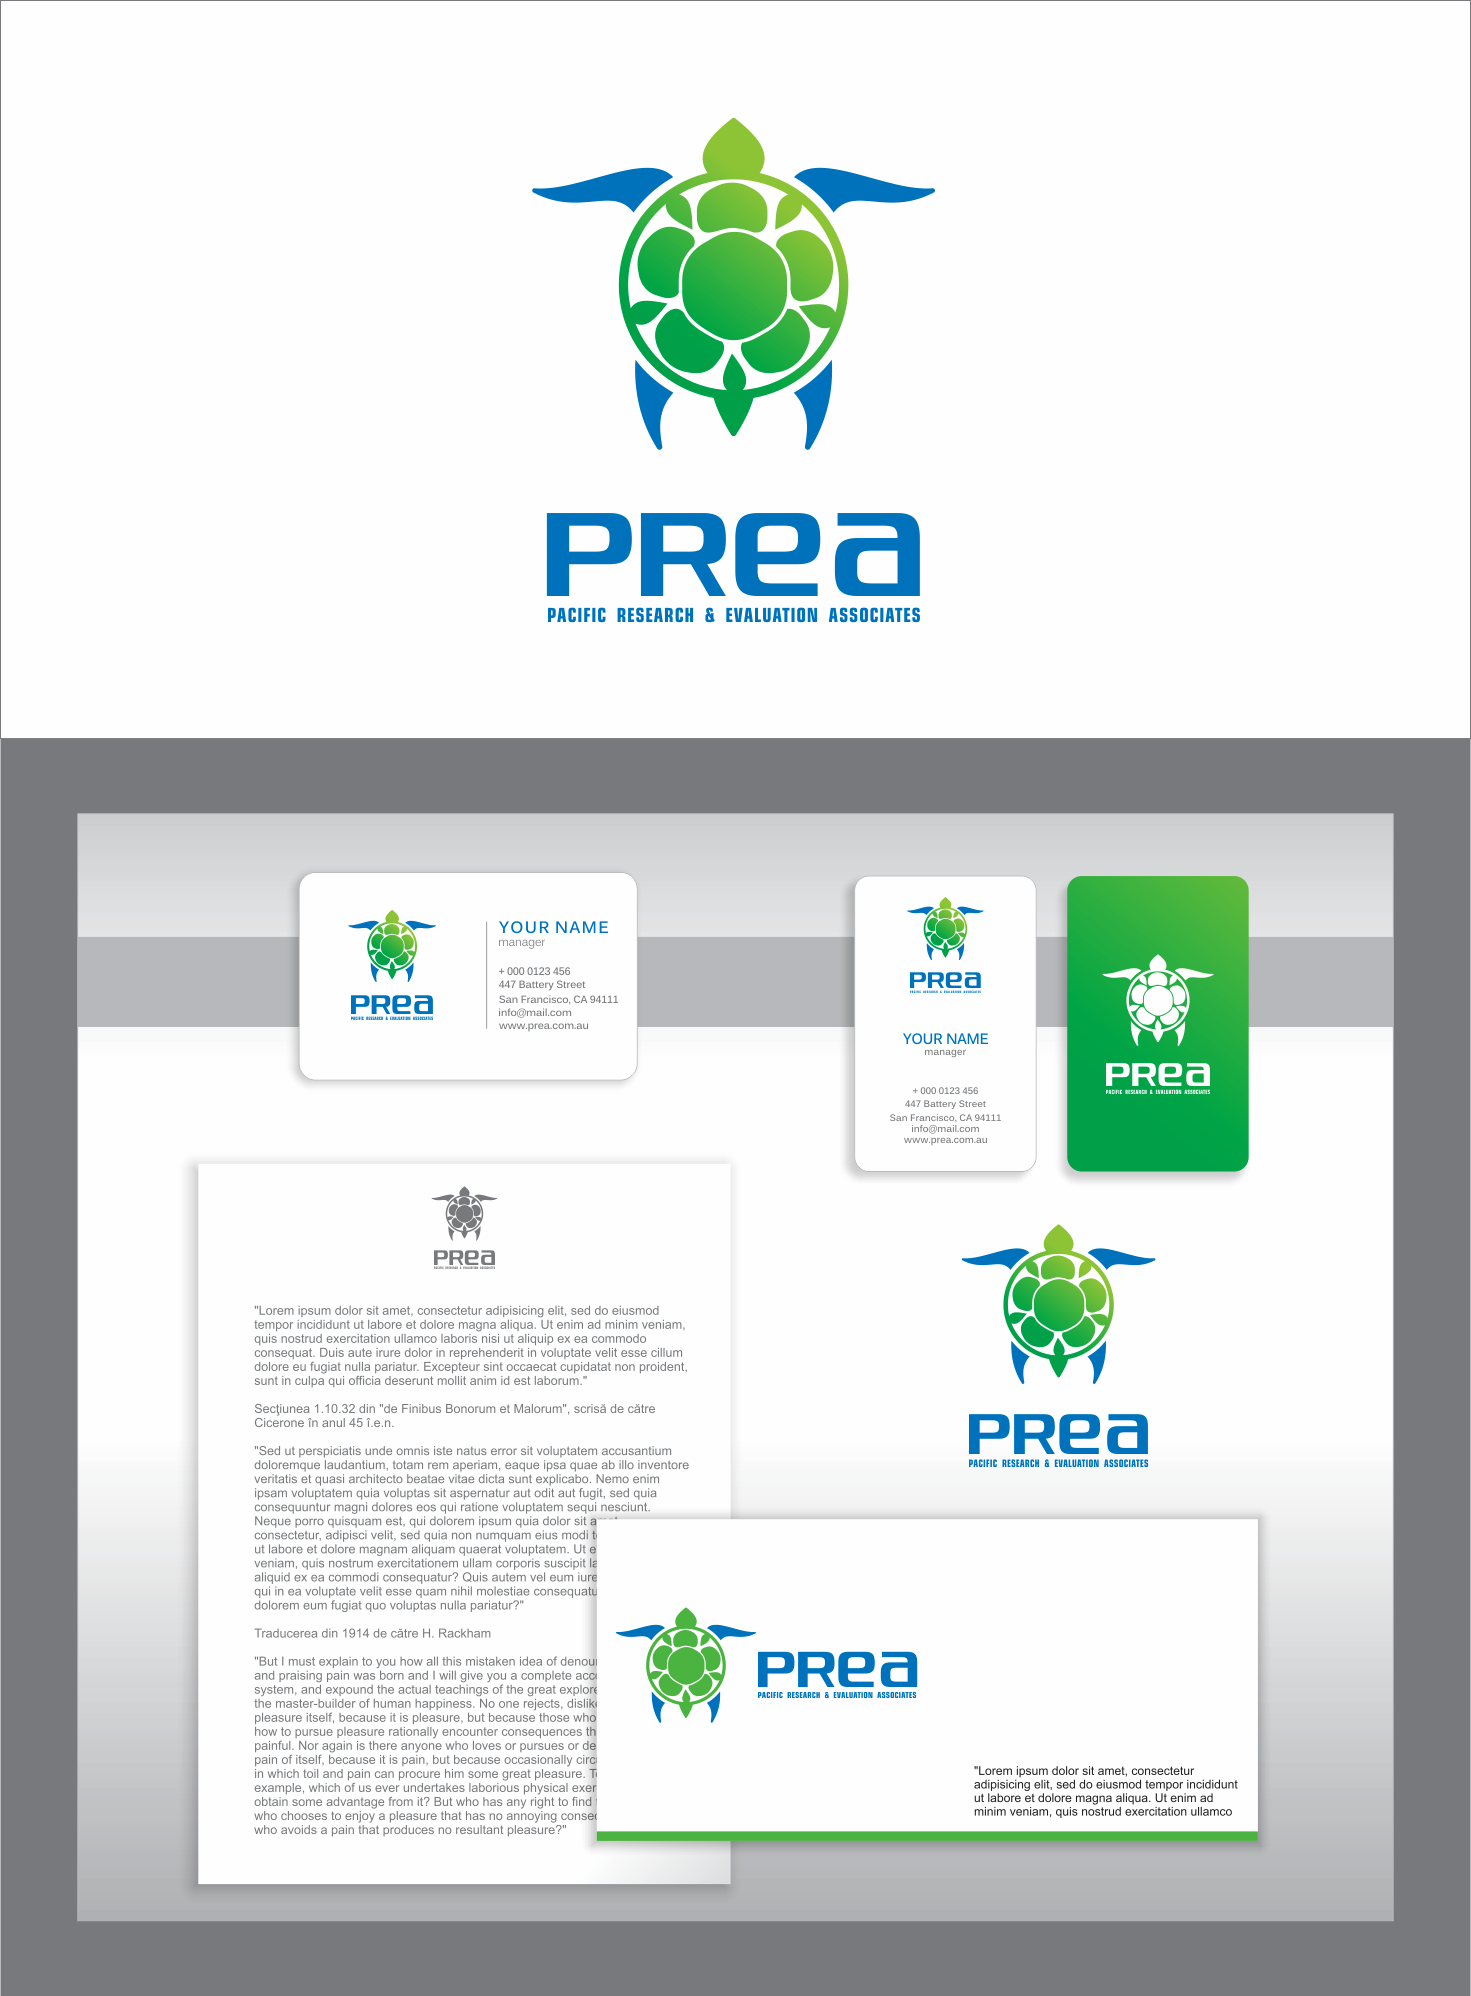 Create a crisp logo for Pacific Research and Evaluation Associates (PREA)